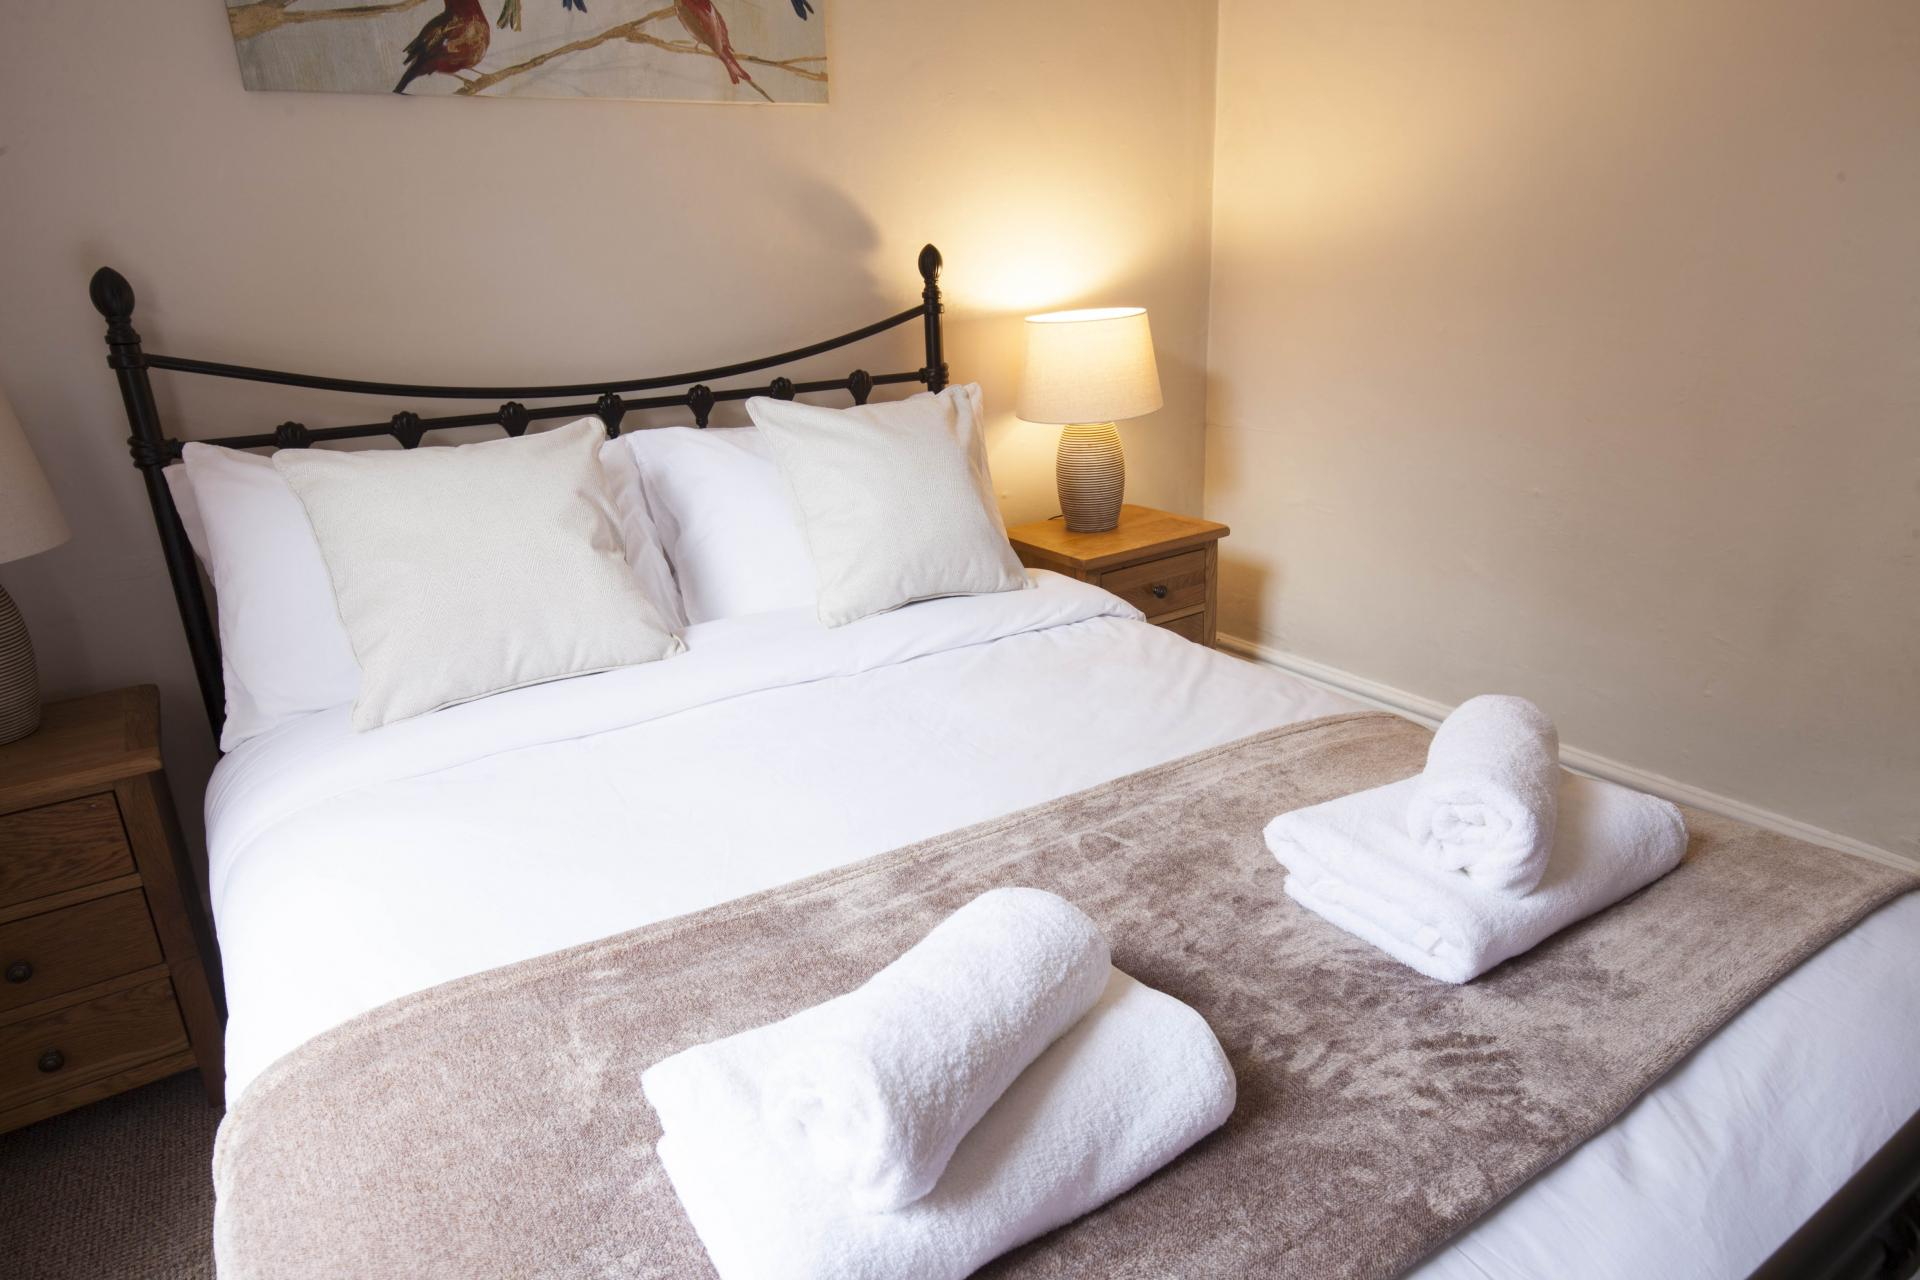 Bed at Victorian Towers Apartment, Centre, Leicester - Citybase Apartments